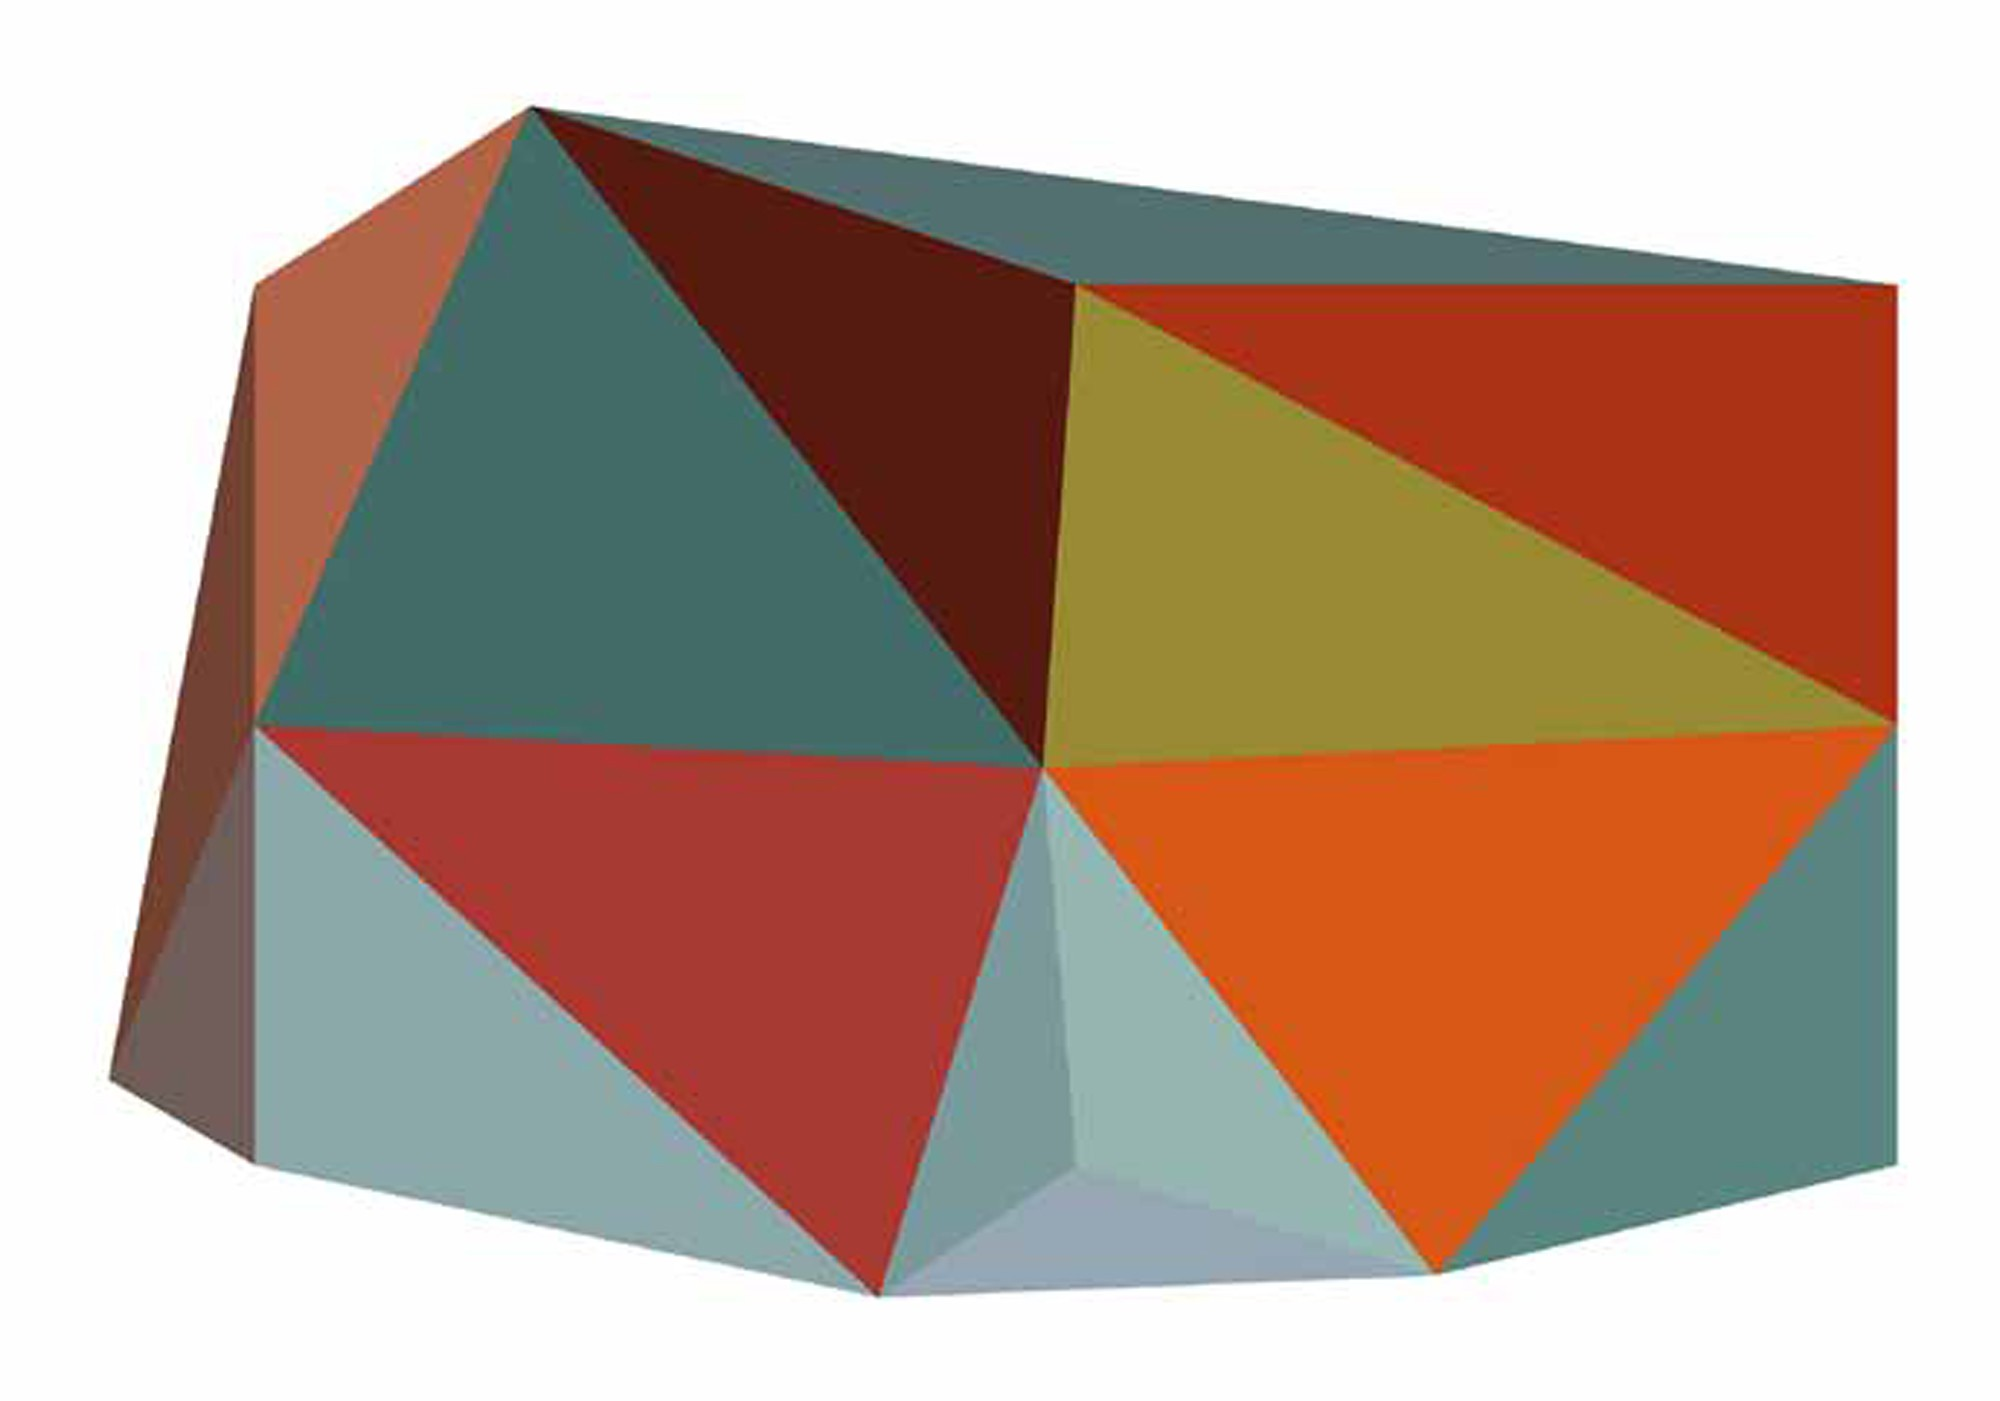 Triangulations n°1, 2013